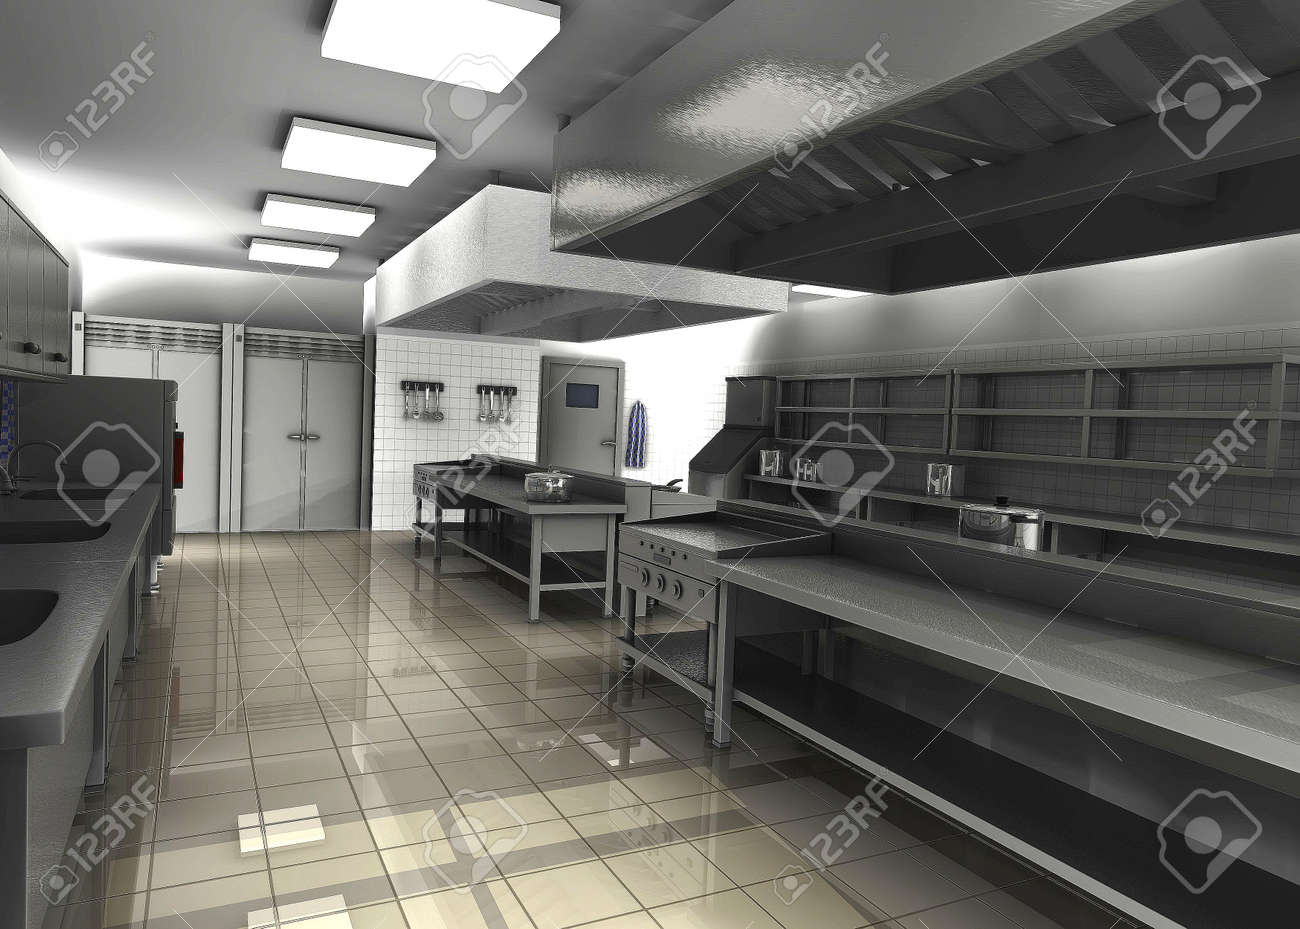 Commercial Kitchen 3d Design 3d Render Of Professional Restaurant Kitchen Stock Photo Picture